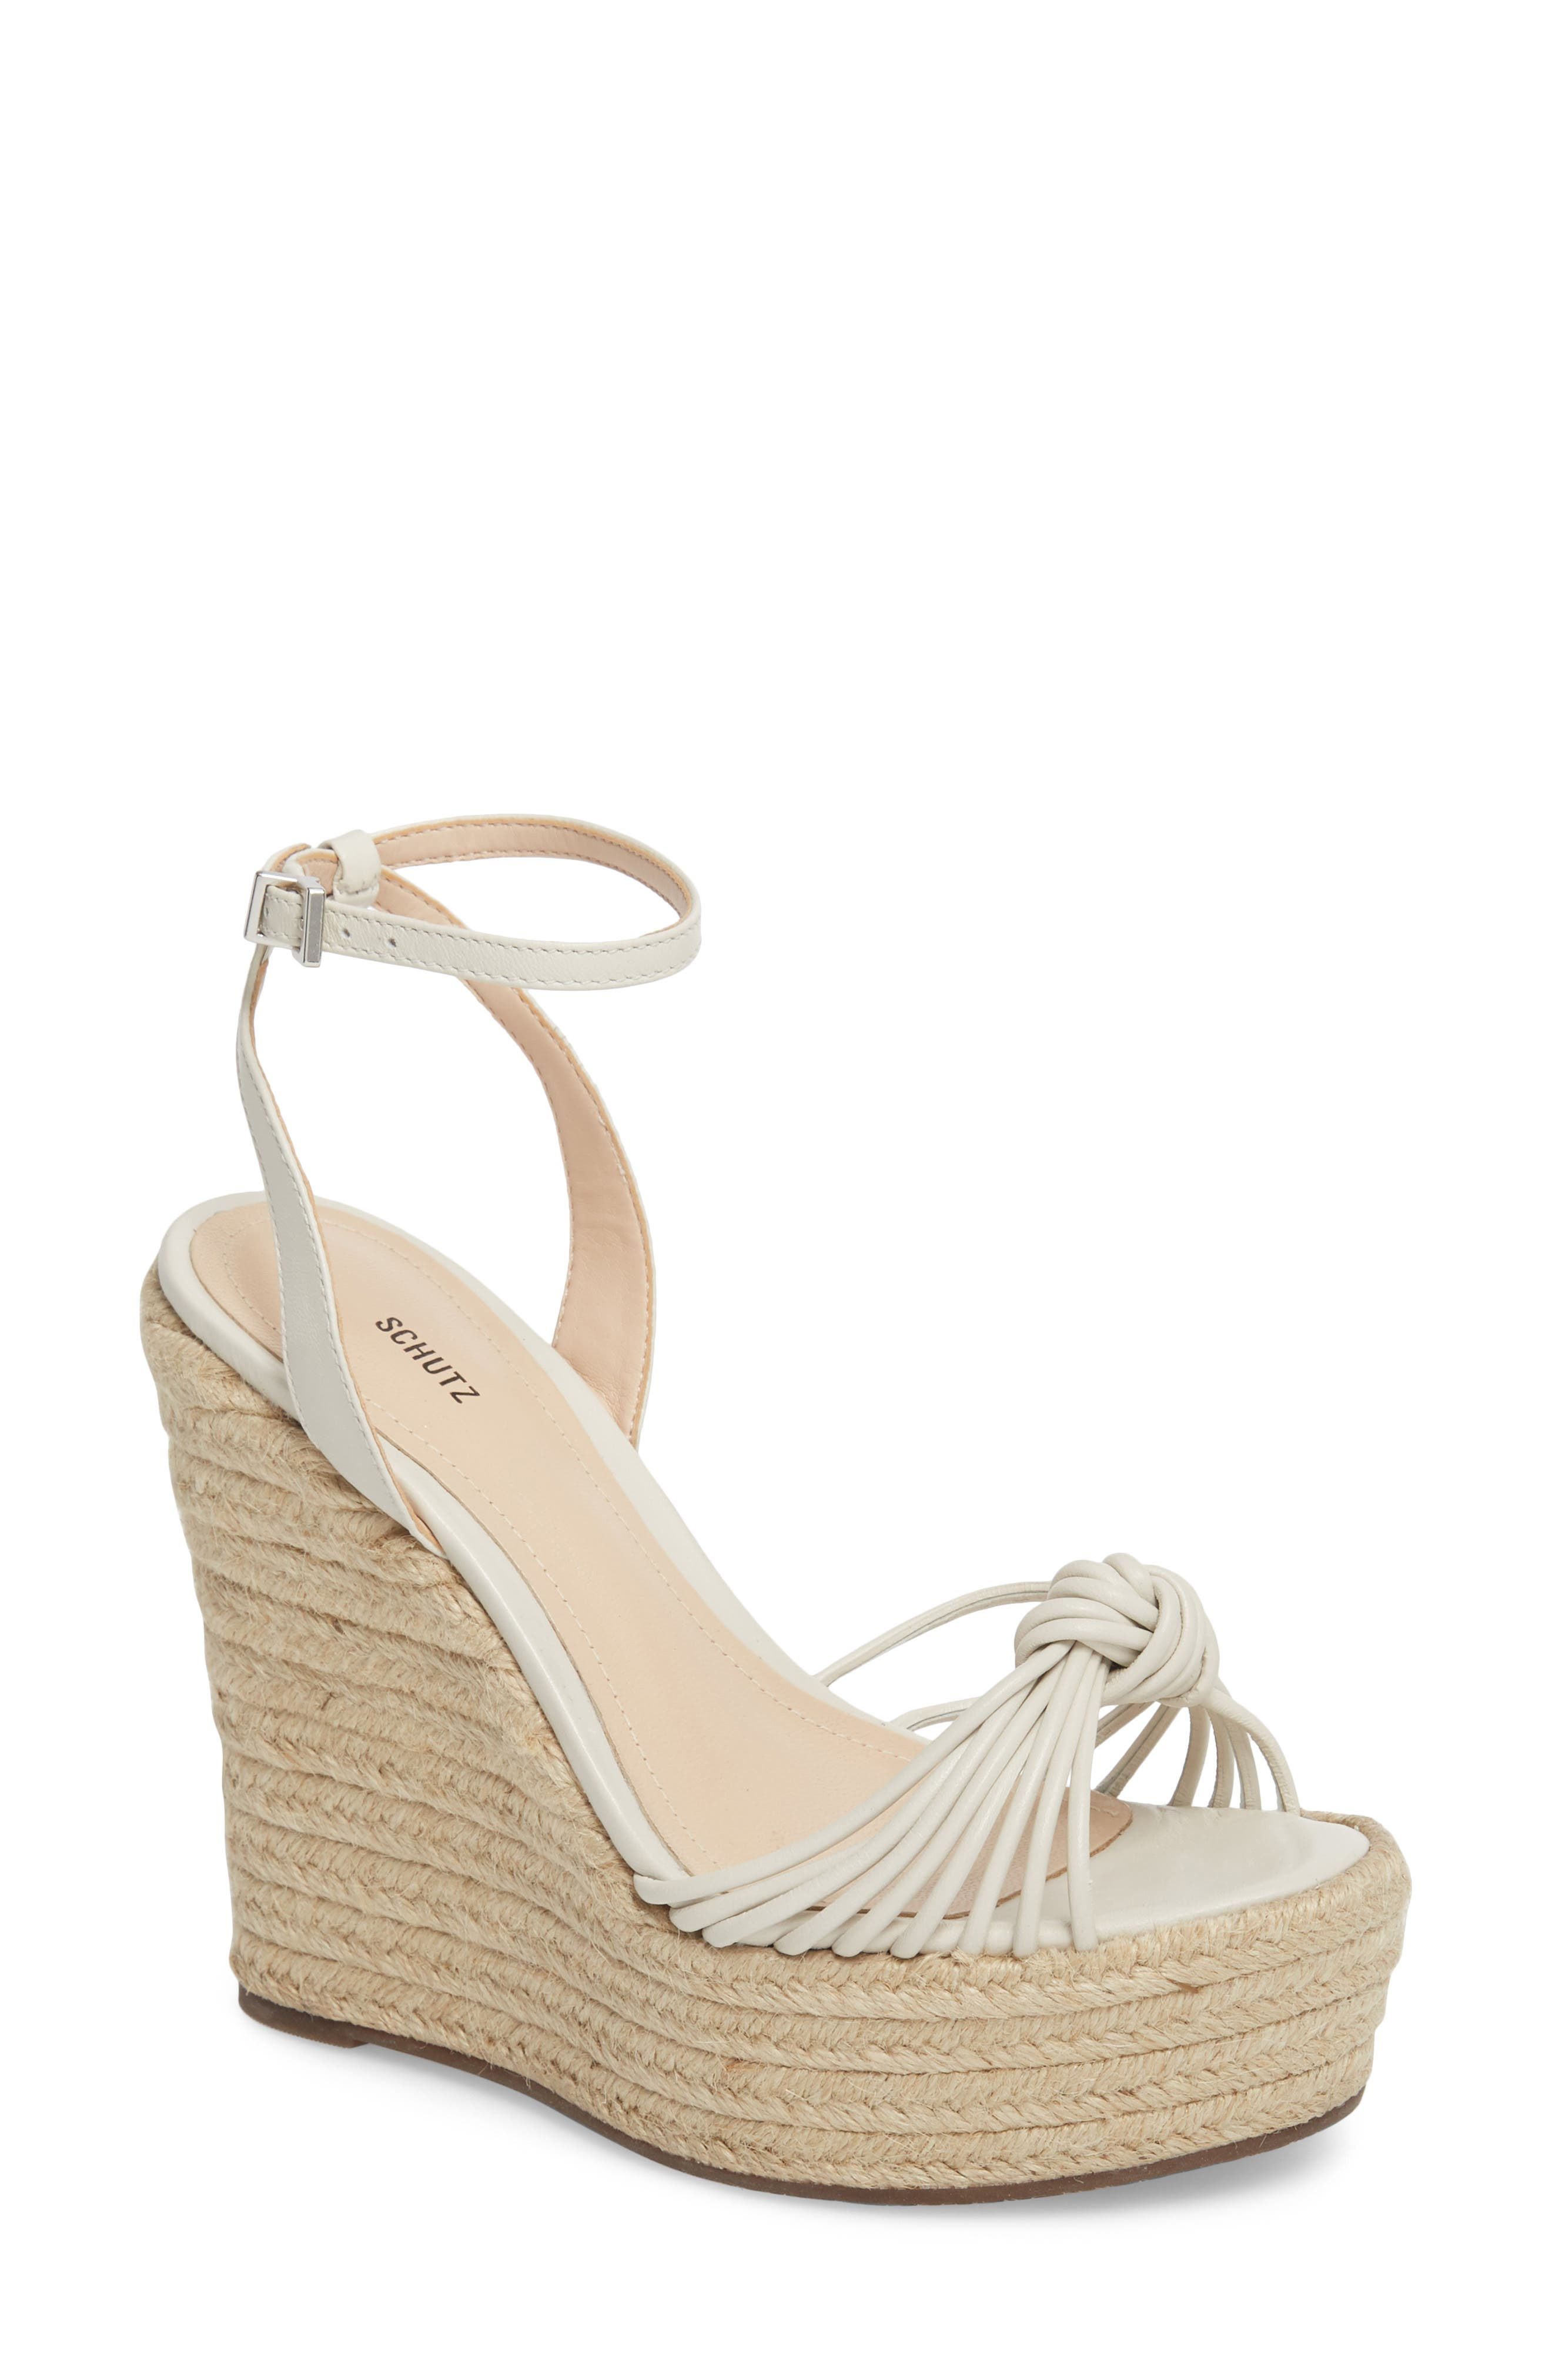 Gianne Platform Wedge Sandal,                             Main thumbnail 1, color,                             PEARL FABRIC